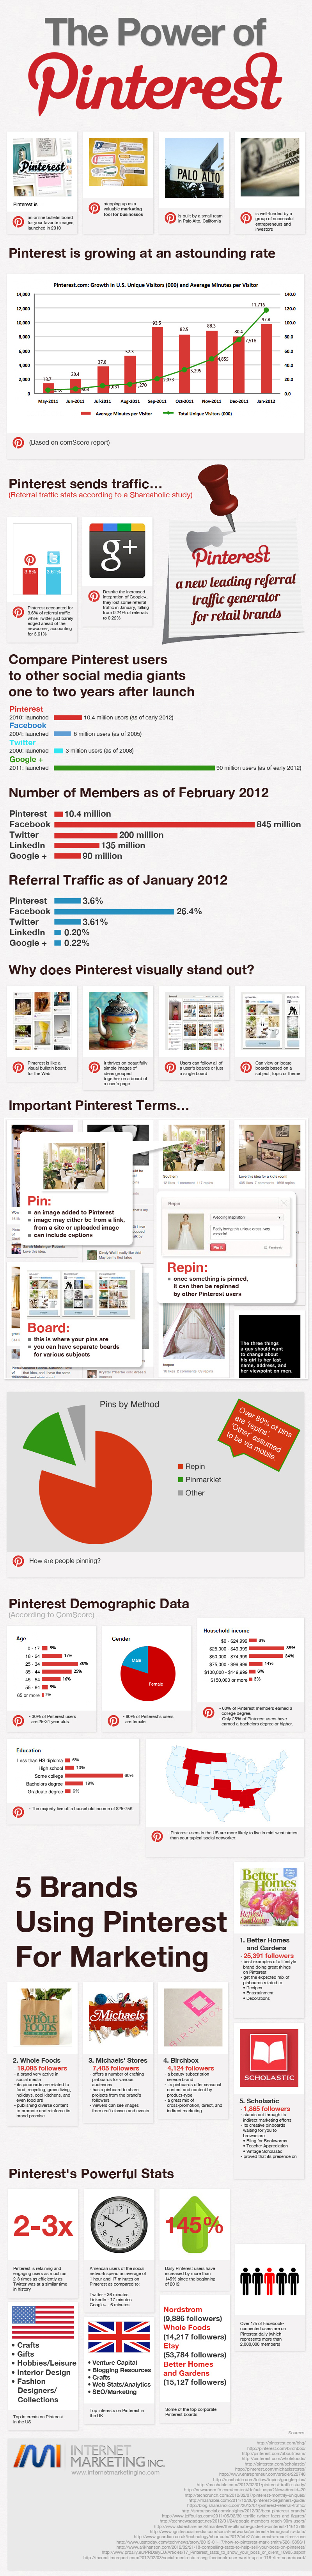 Pinterest and Social Media Marketing